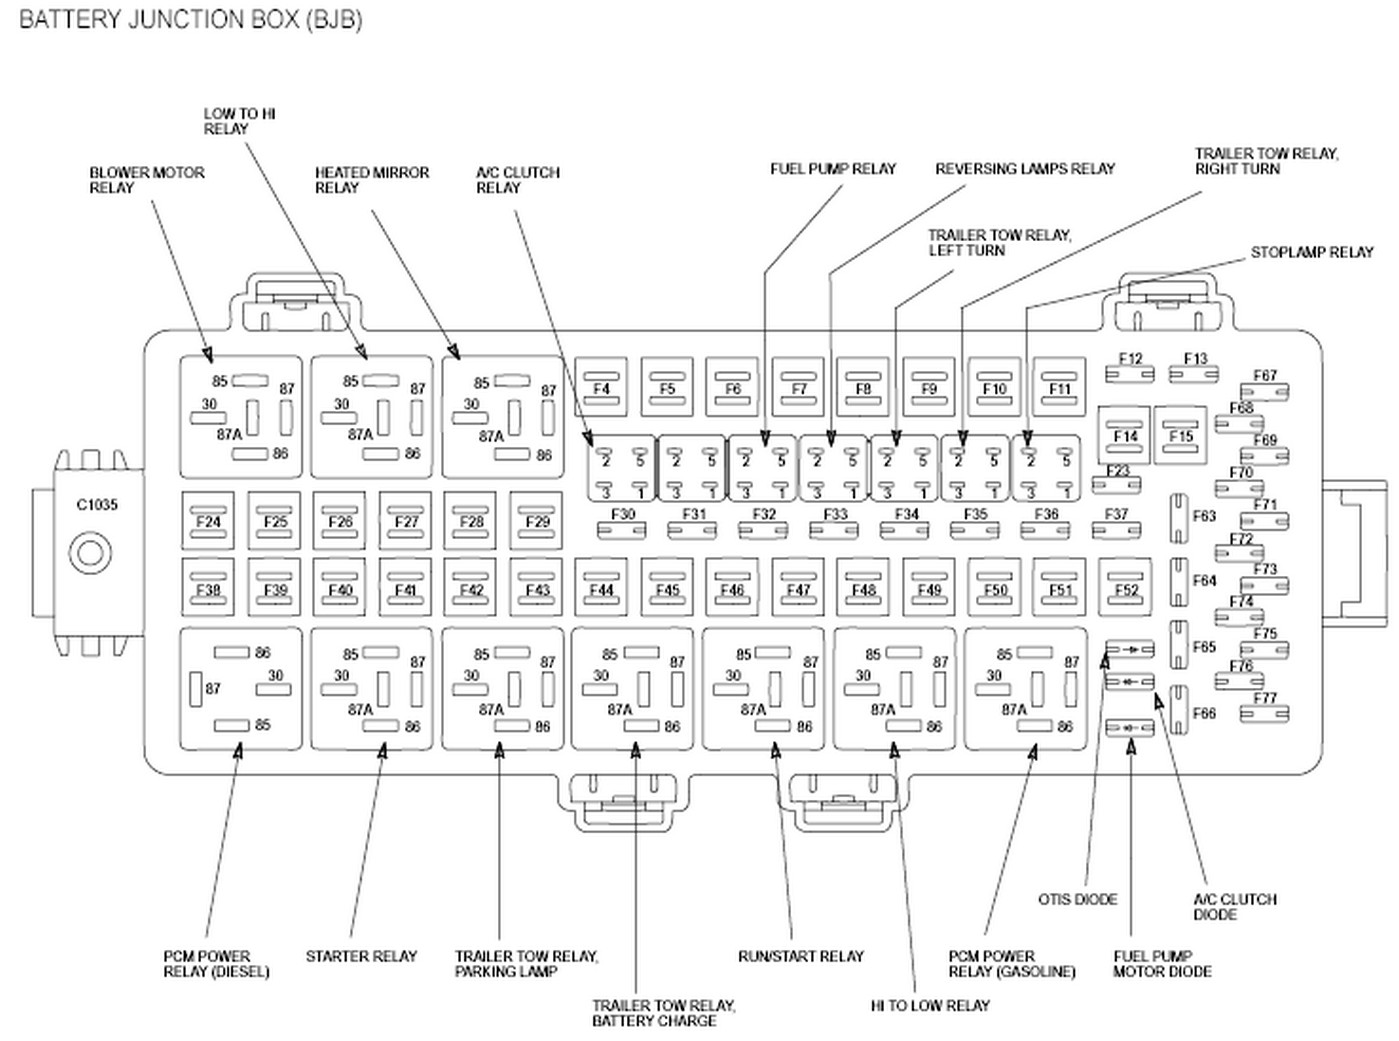 2011 ford f250 fuse box diagram Zoinyhu 2012 f250 fuse box location 2009 ford fusion fuse box diagram 2012 ford edge fuse box diagram at virtualis.co